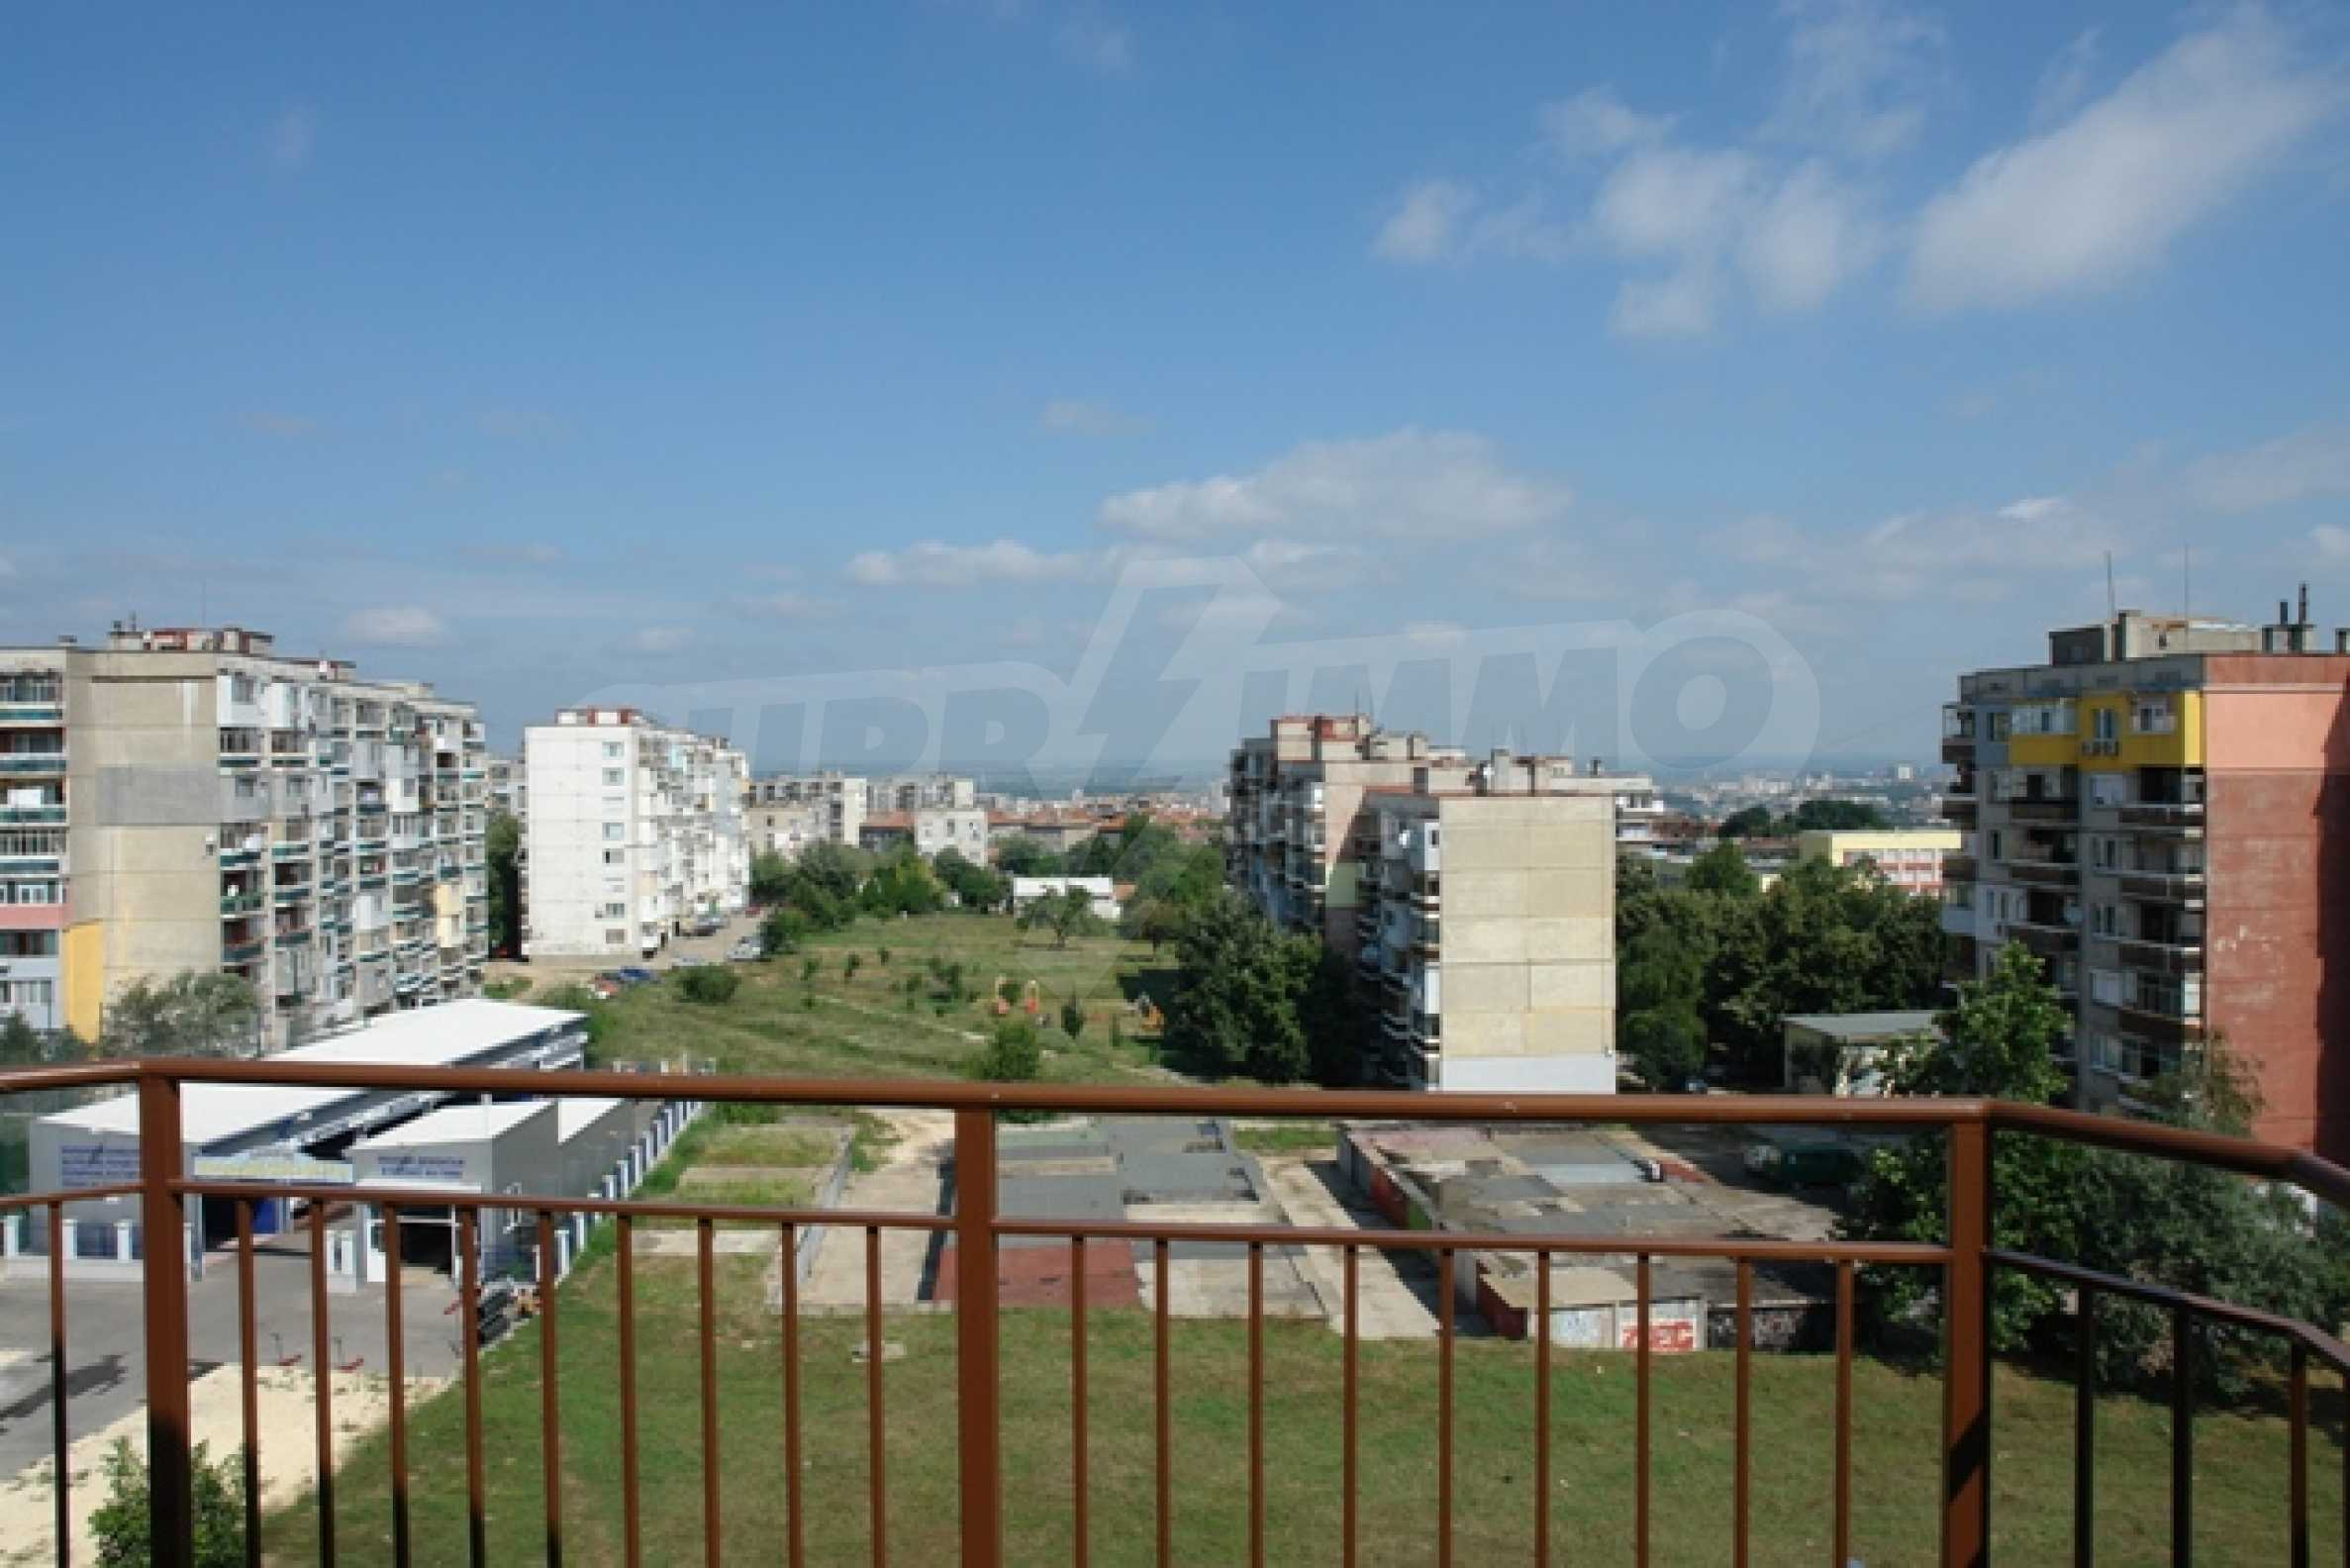 2-bedroom apartment in Rousse with amazing city panorama